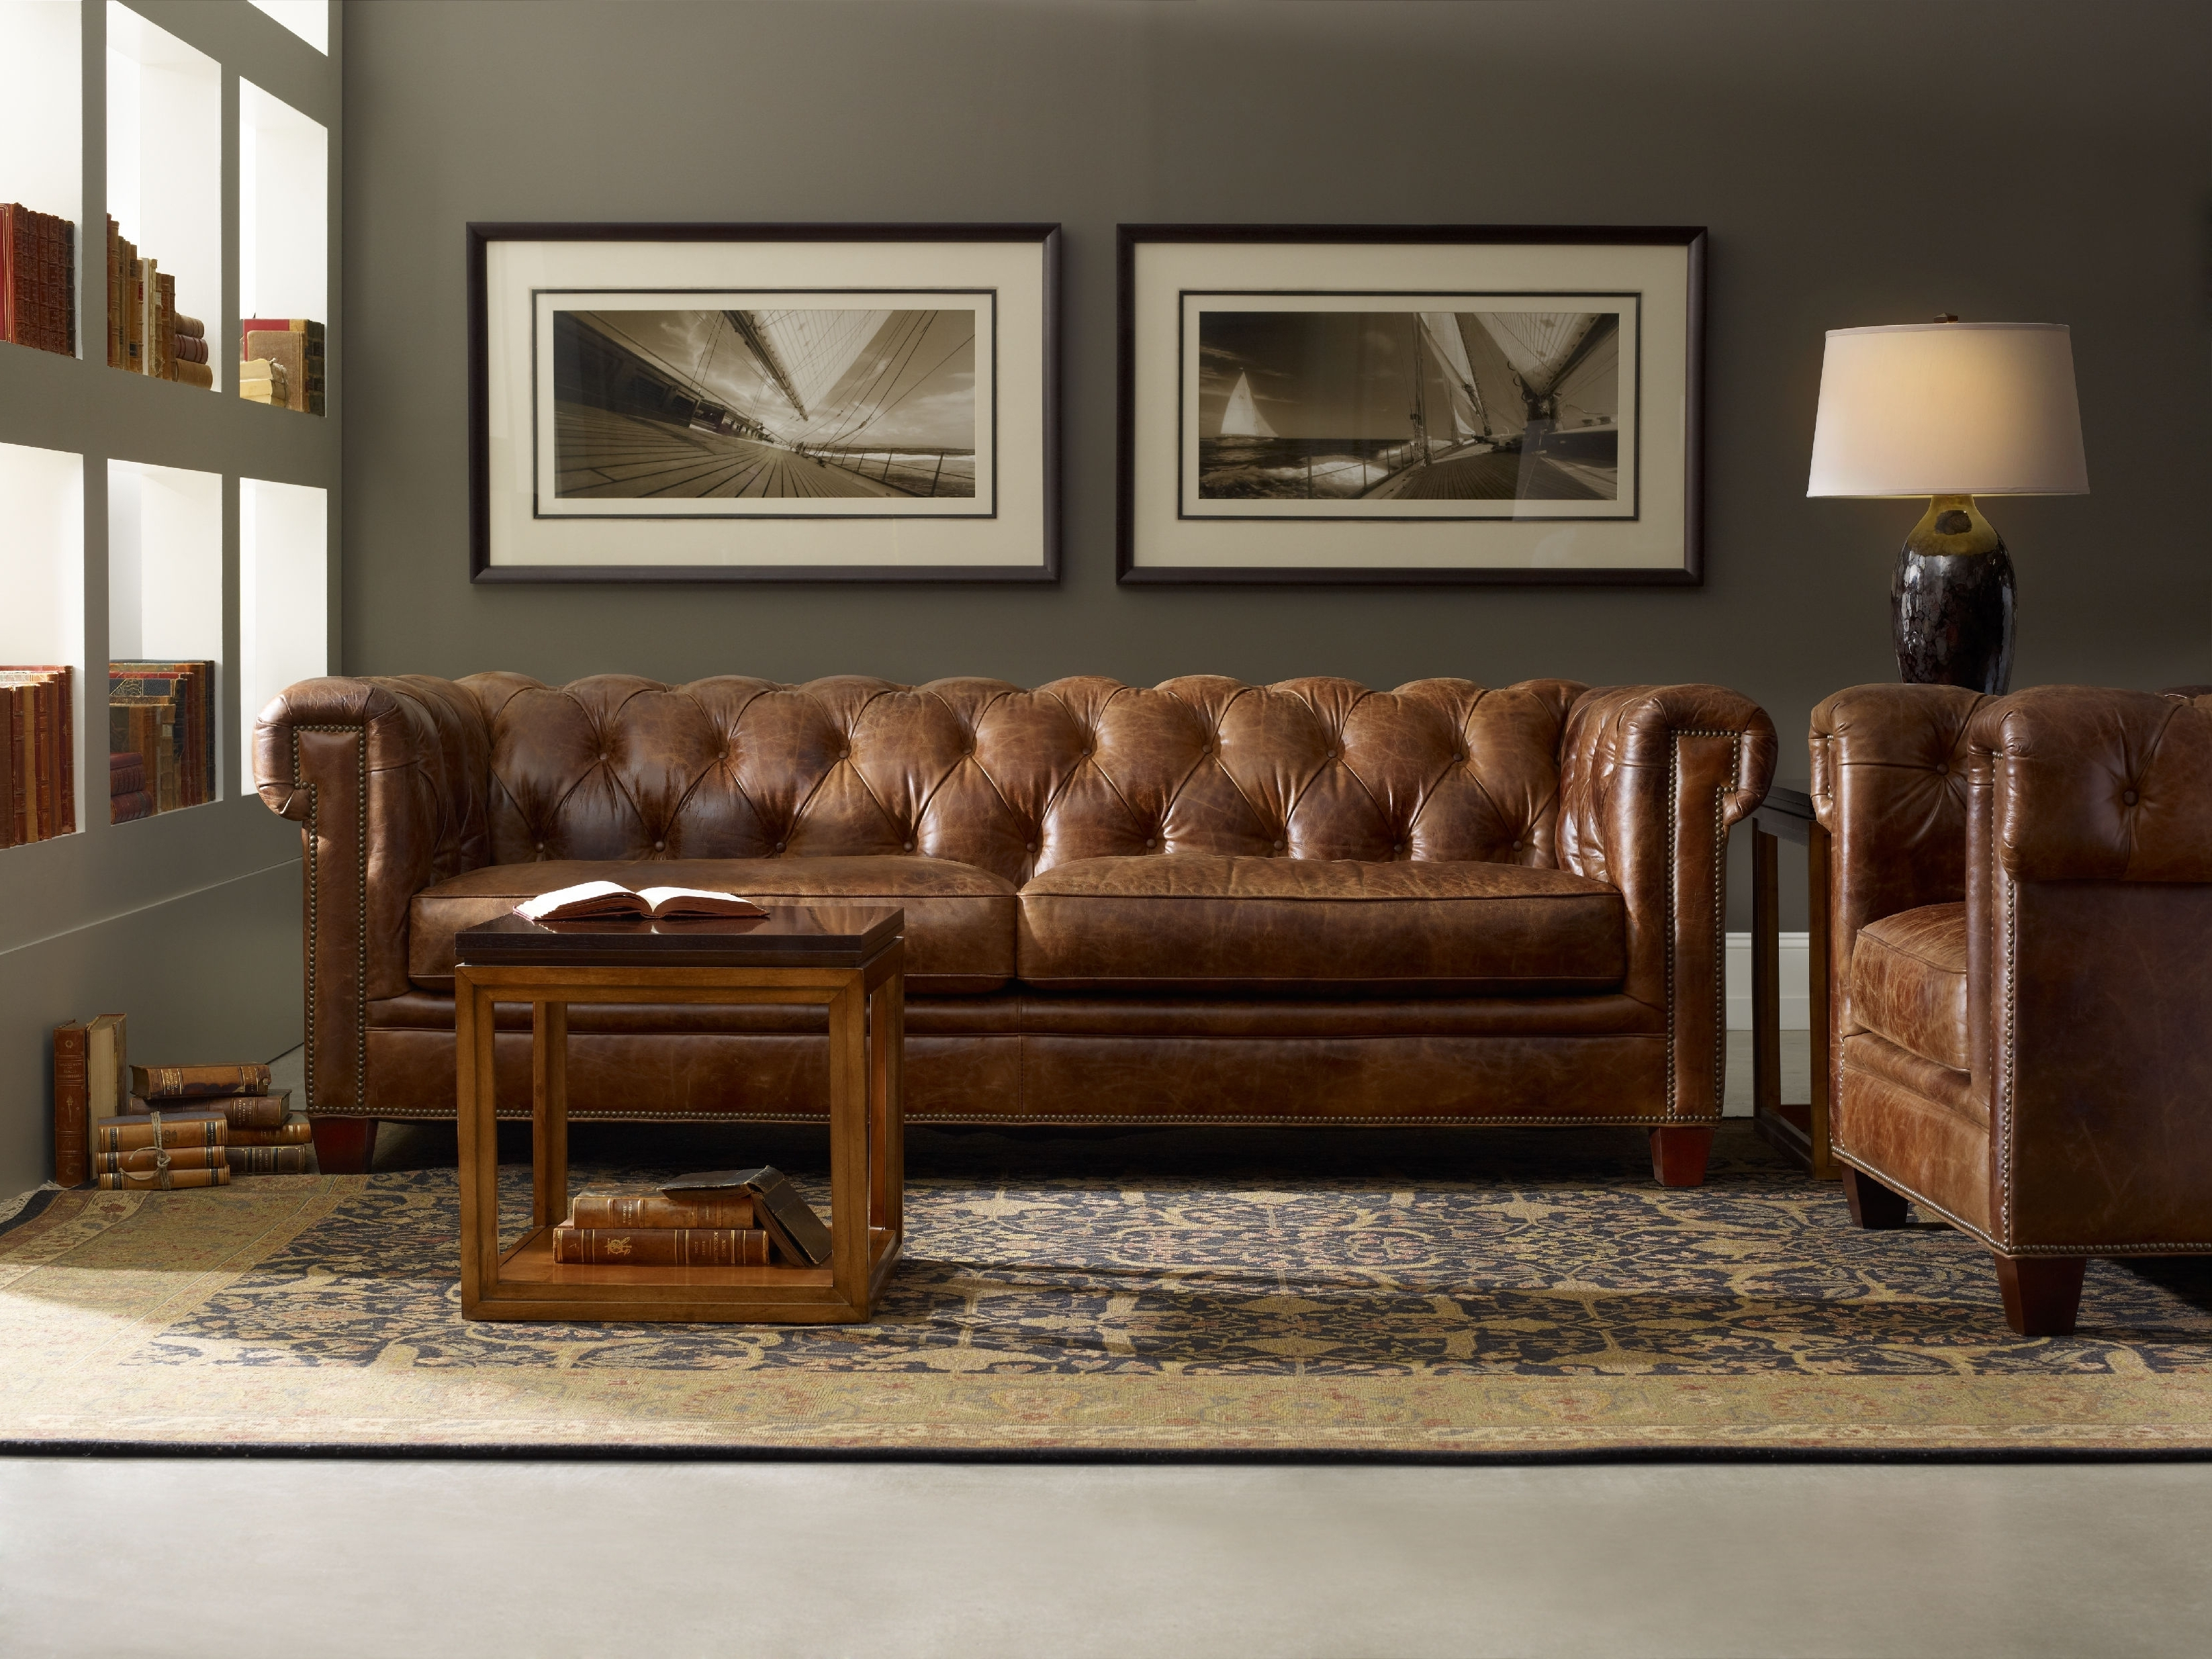 Pottery Barn Chesterfield Leather Sofa Reviews | Two Birds ...